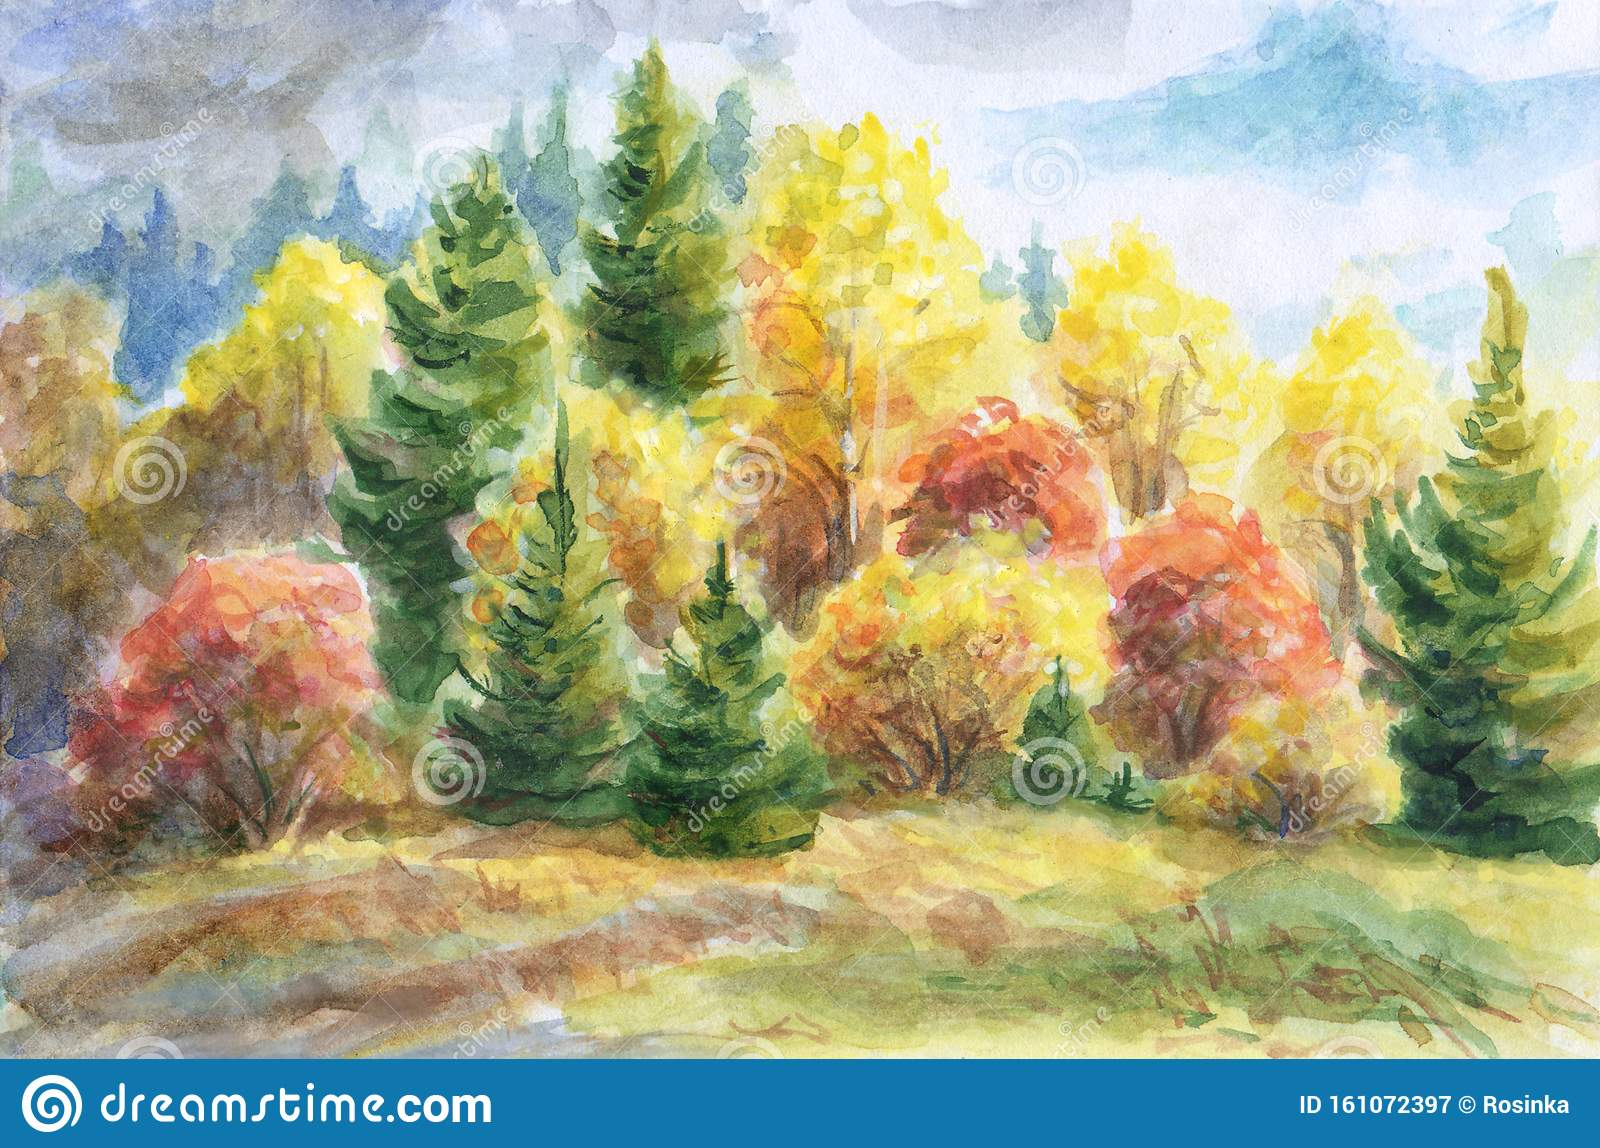 autumn forest watercolor landscape painting stock illustration illustration of landscape border 161072397 https www dreamstime com autumn forest watercolor landscape painting mixed multicolored trees image161072397